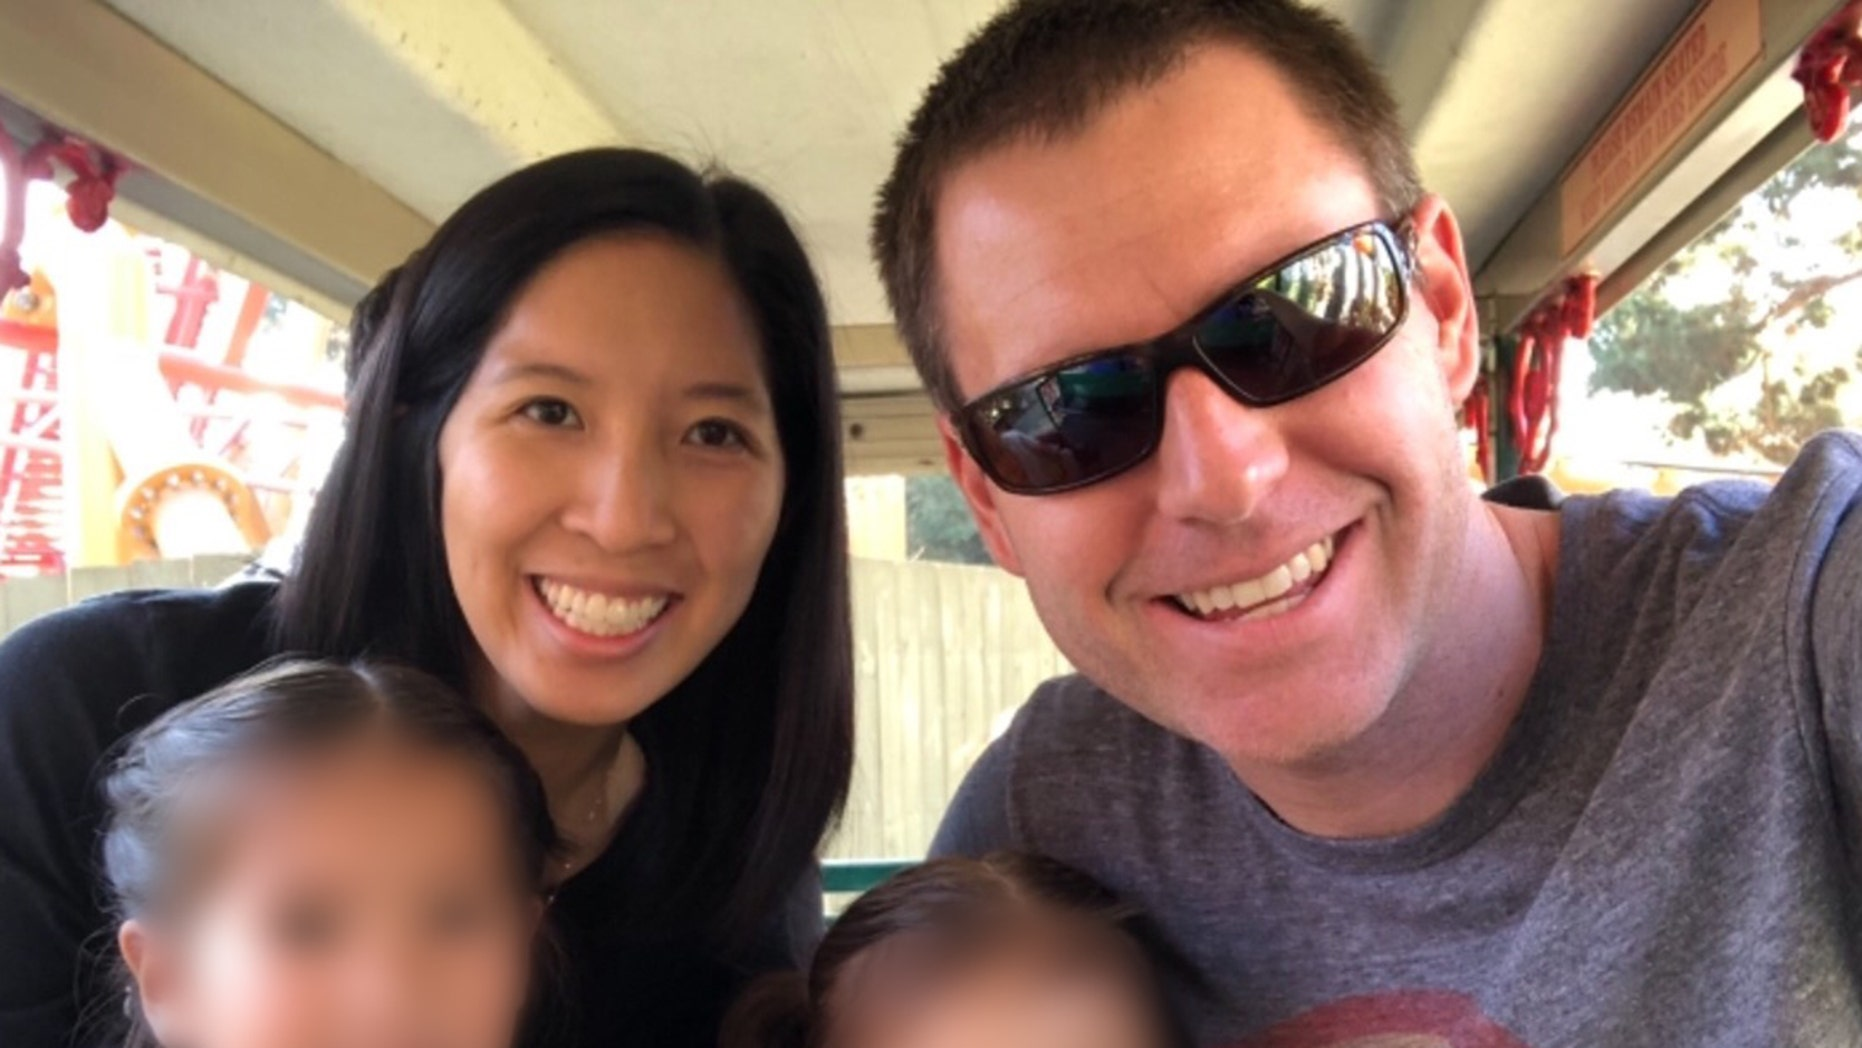 Tristan Beaudette, 35, was fatally shot in front of his two young daughters while on a camping trip in Southern California.